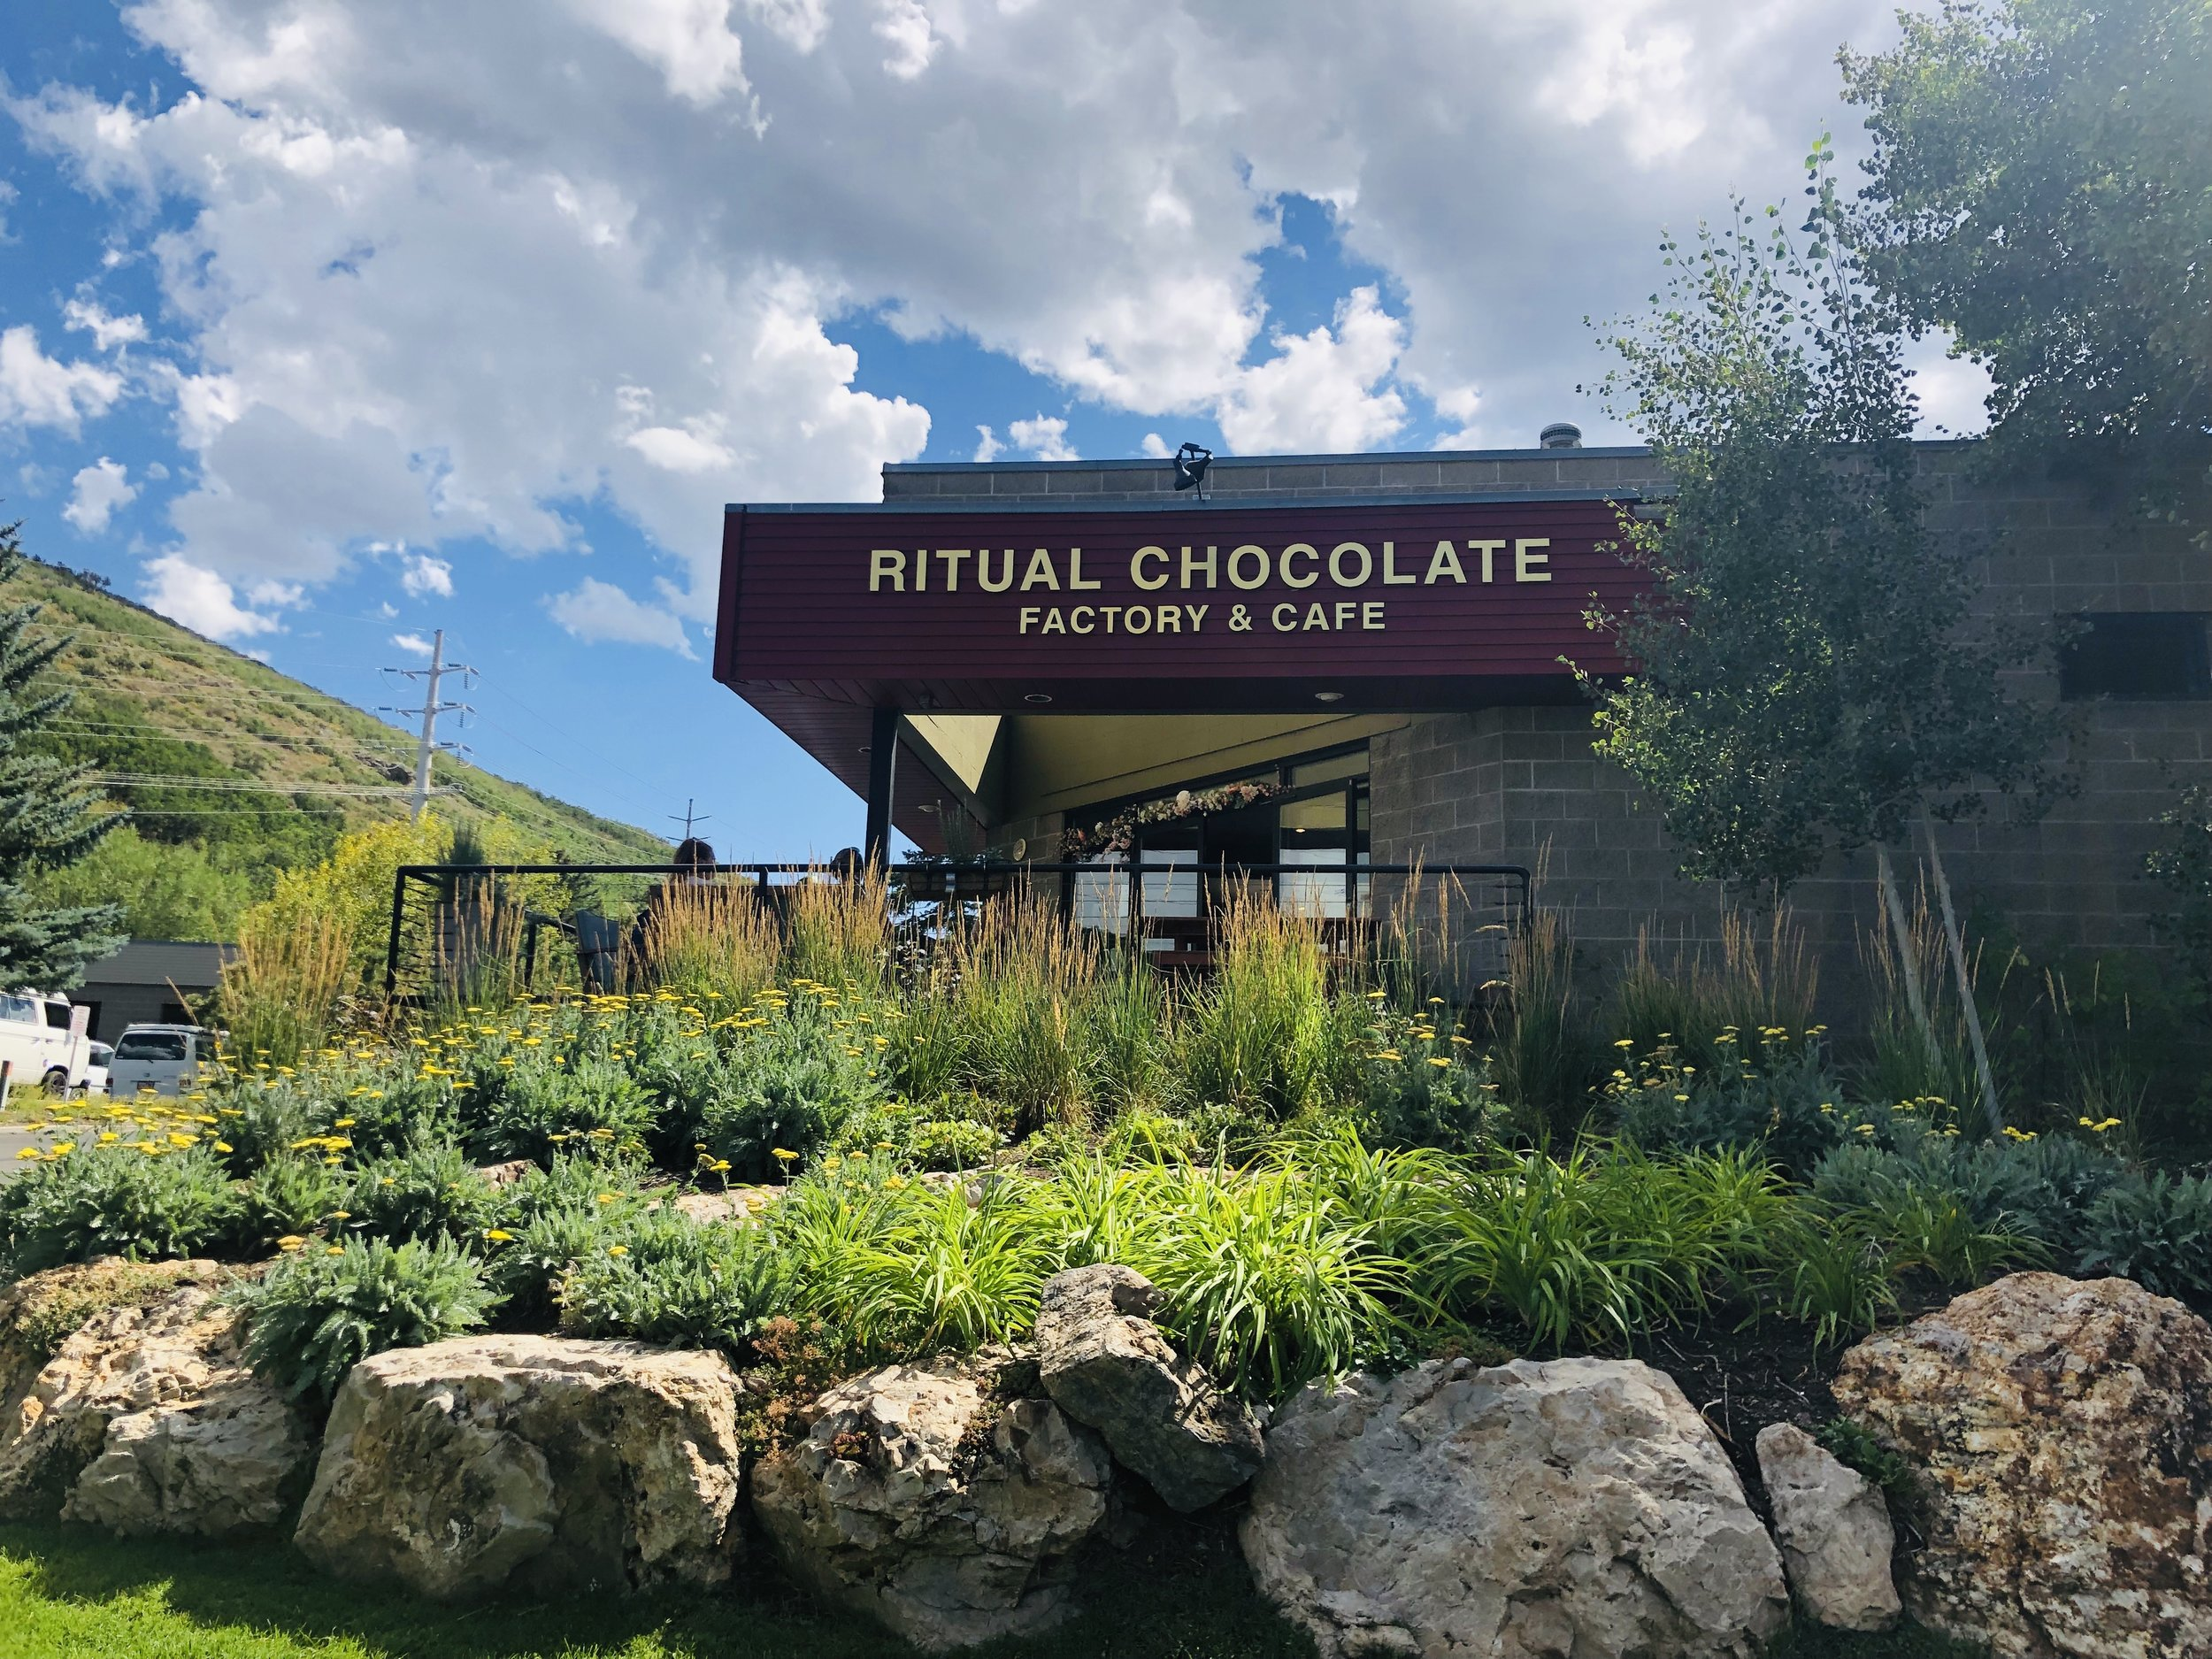 Ritual Chocolate Factory and Cafe